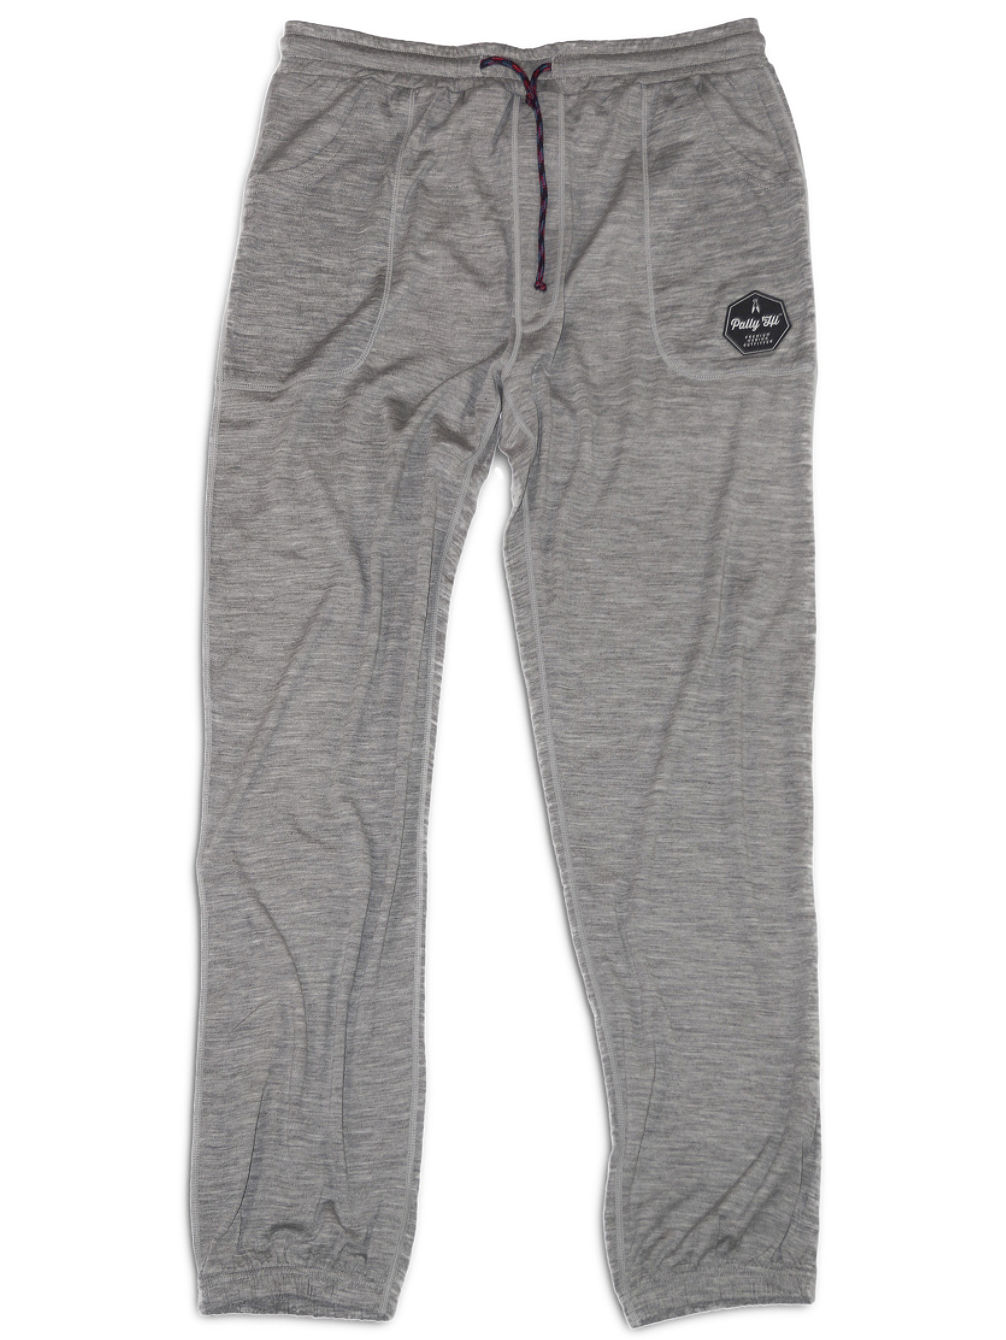 Merino Extreme Chilling Jogging Pants